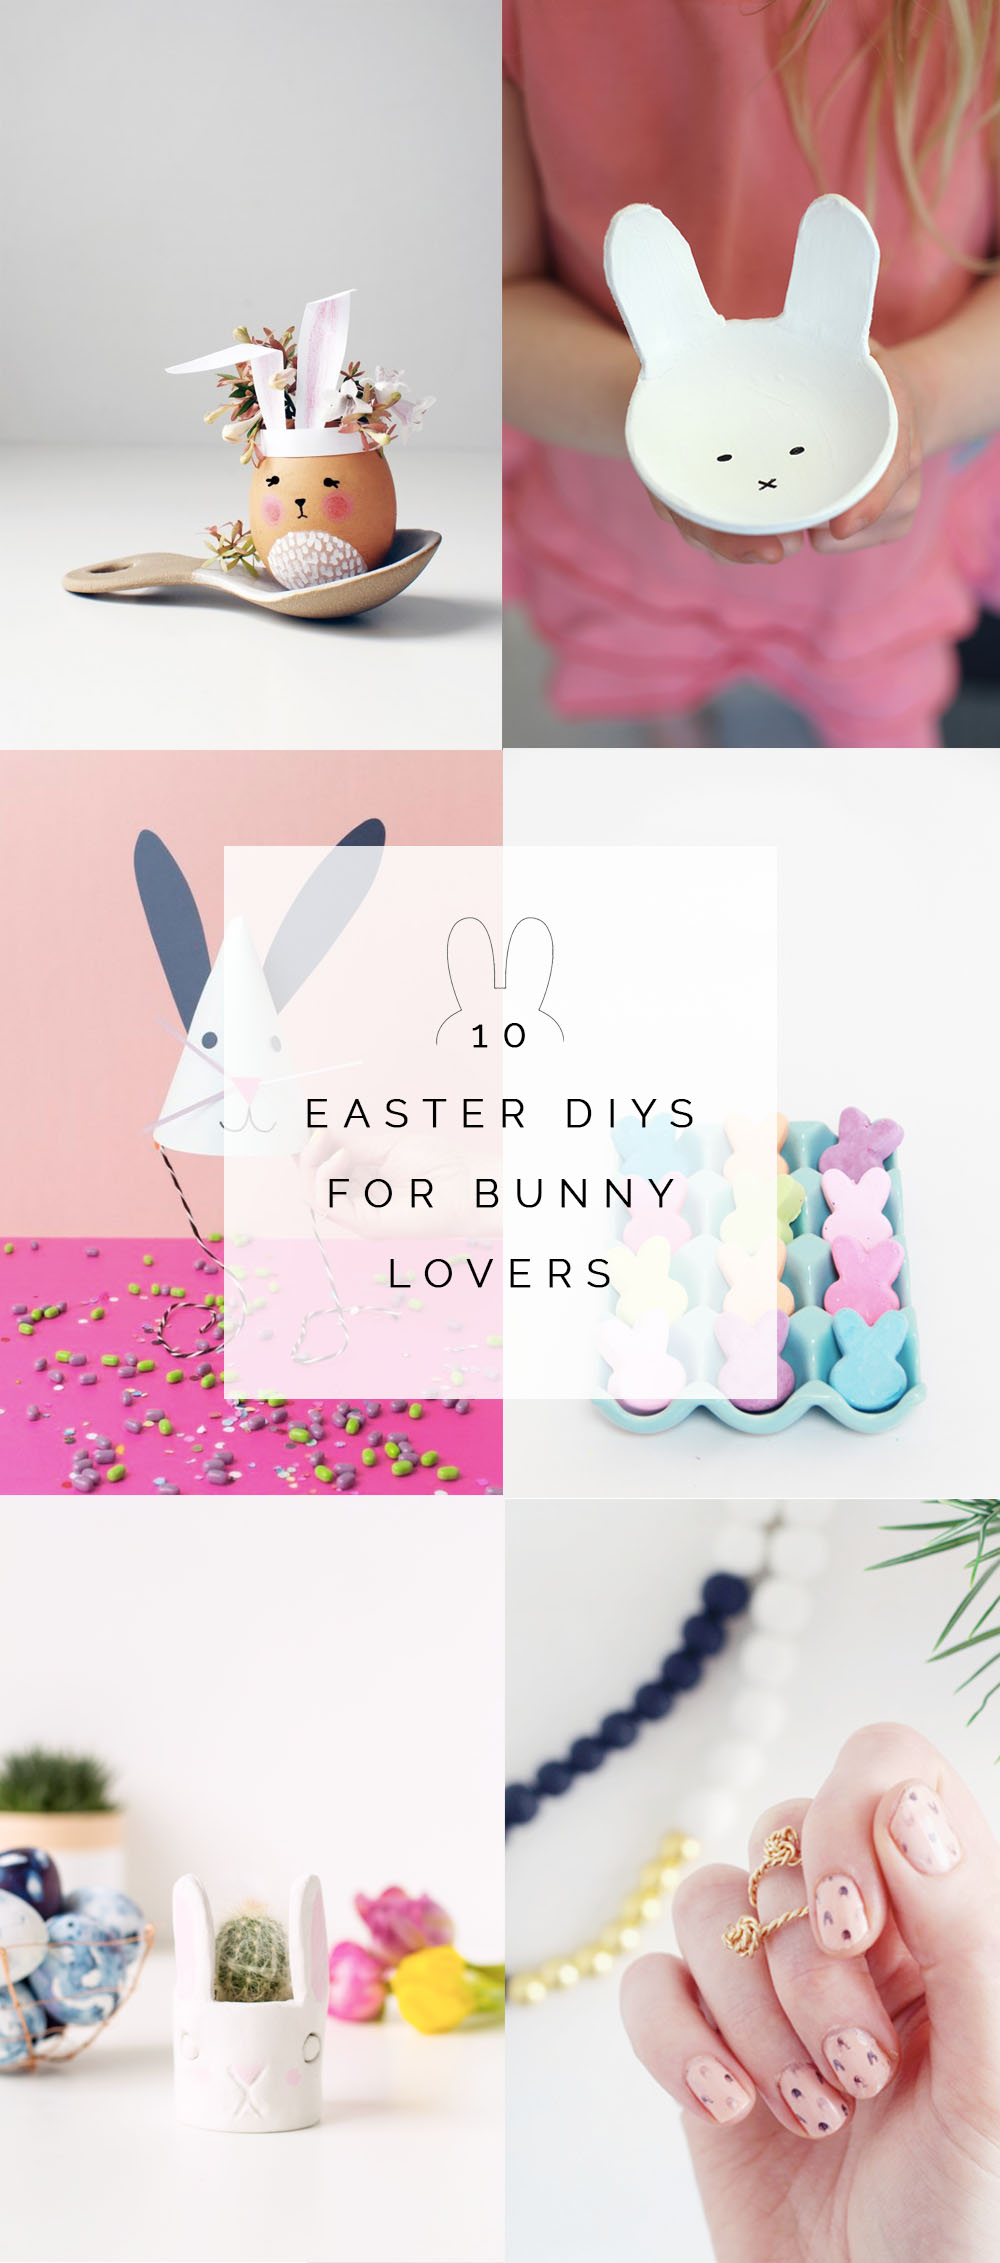 10 Easter DIY's for Bunny Lovers